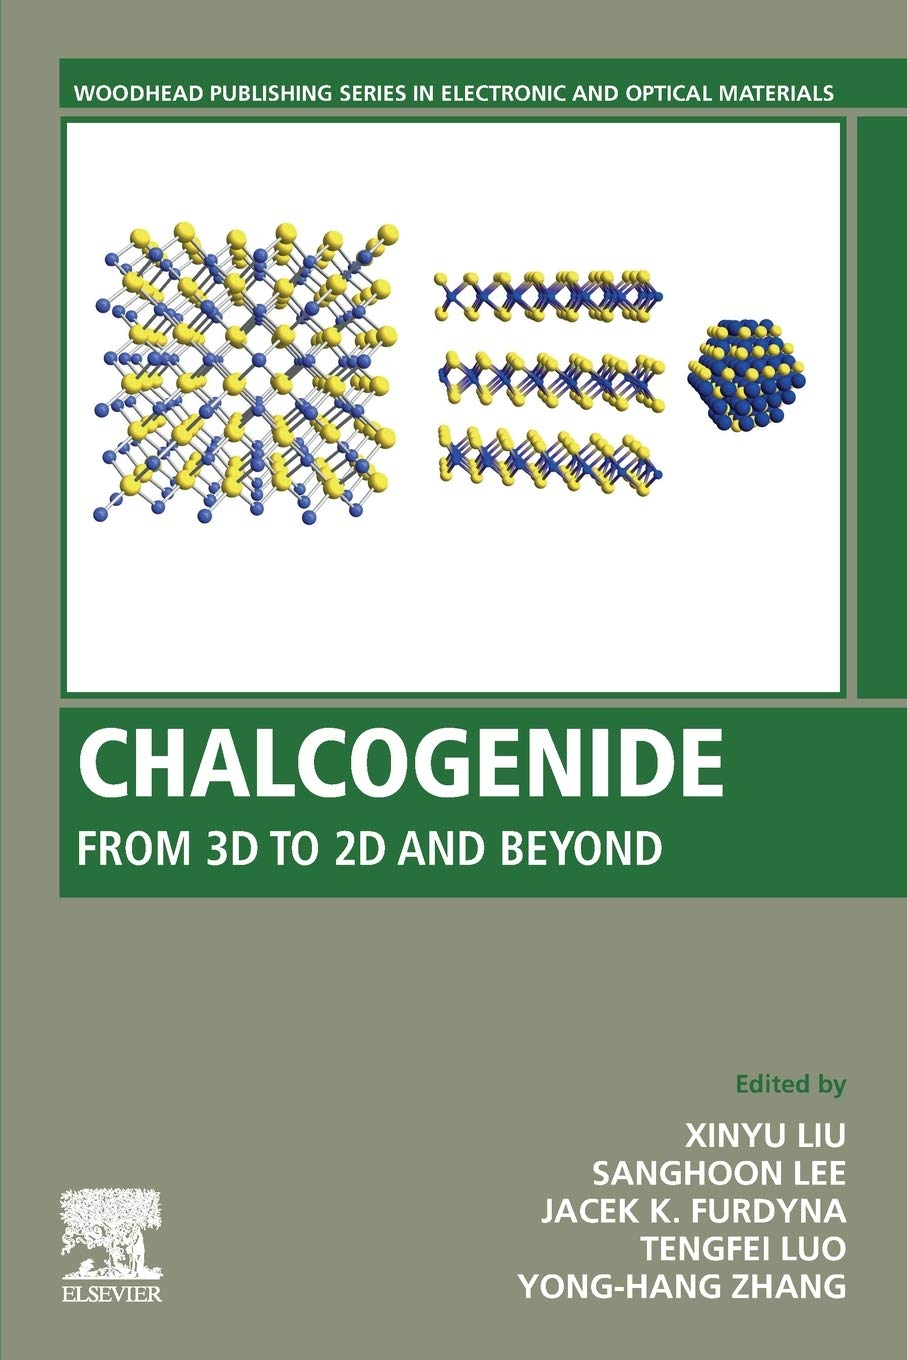 Chalcogenide: From 3D to 2D and Beyond (Woodhead Publishing Series in Electronic and Optical Materials)